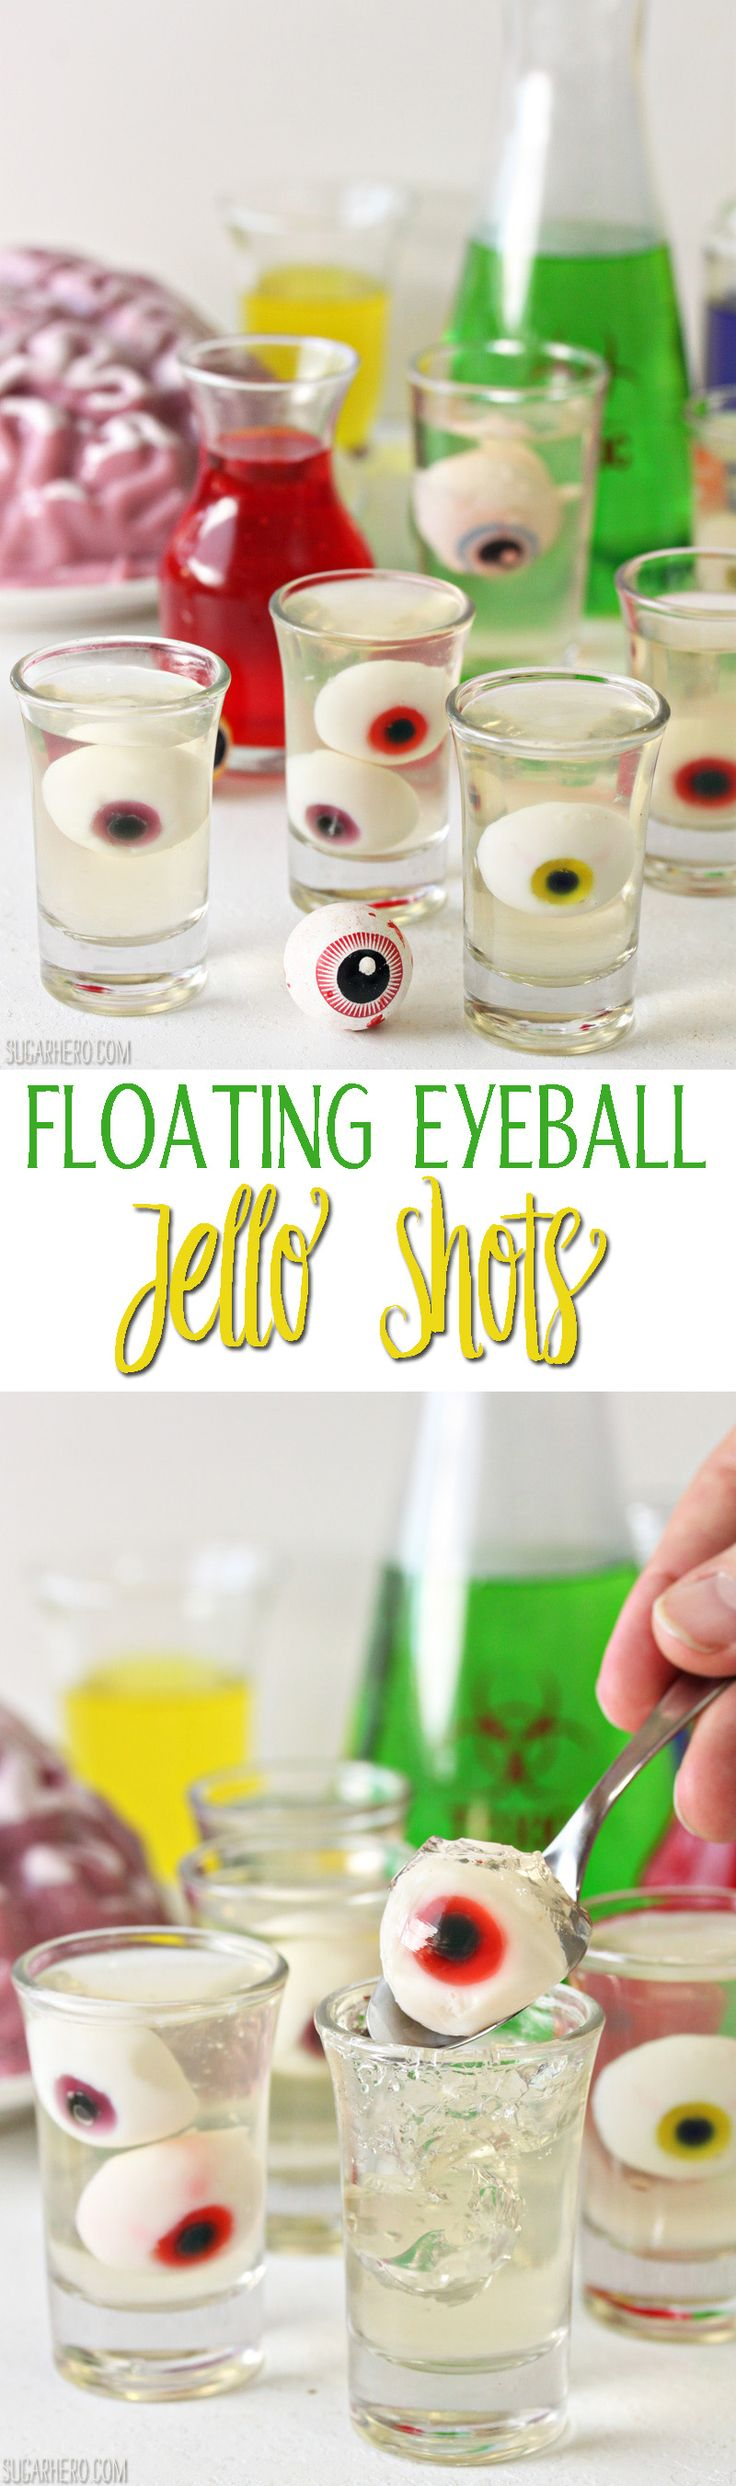 Floating Eyeball Jello Shots - so easy (and so creepy!) for Halloween | From SugarHero.com